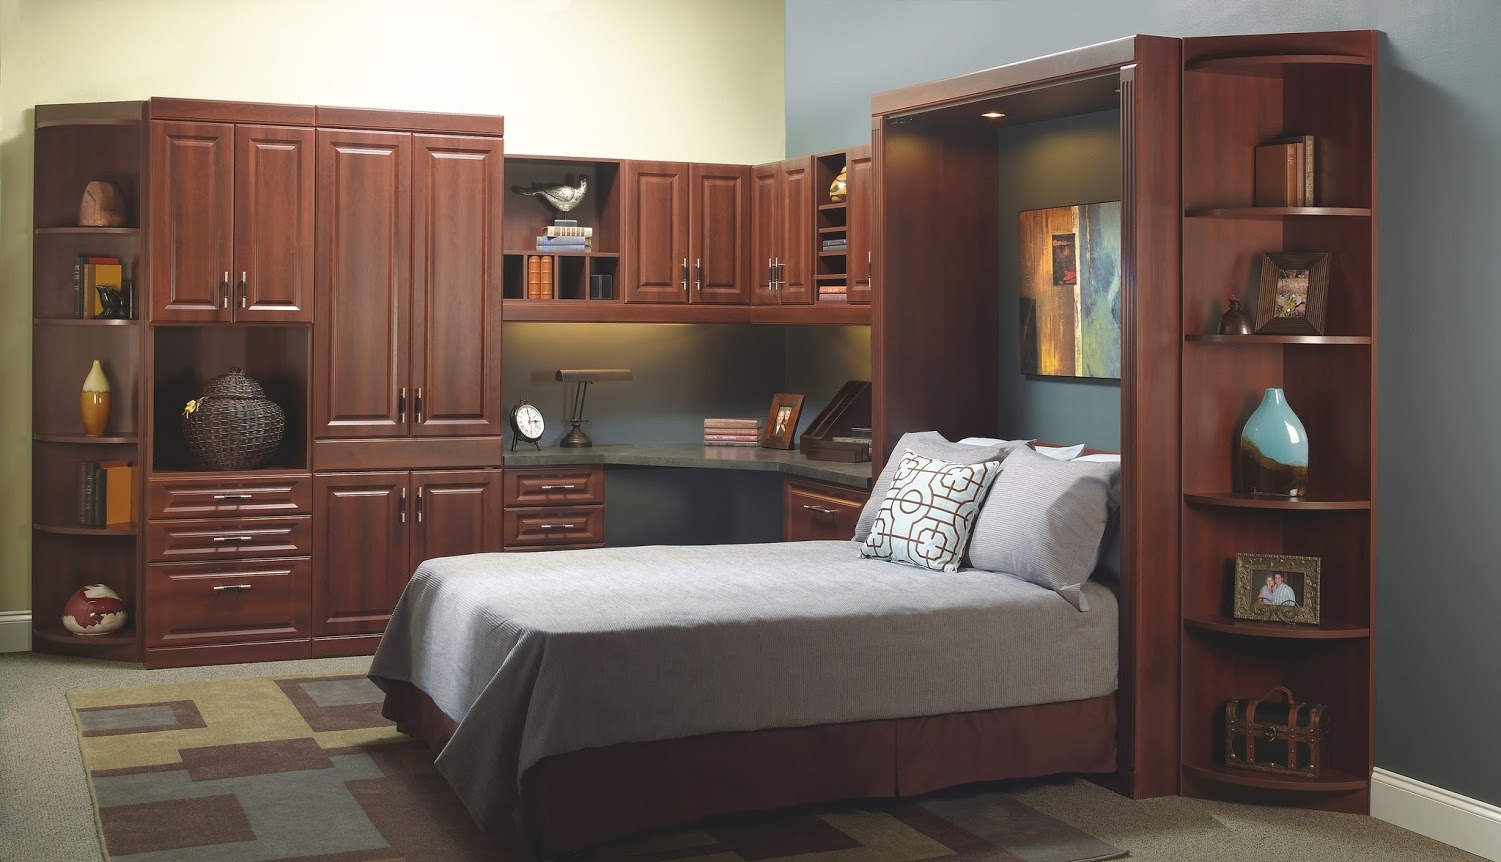 Murphy Beds In Stuart Fl : More space place north palm beach in